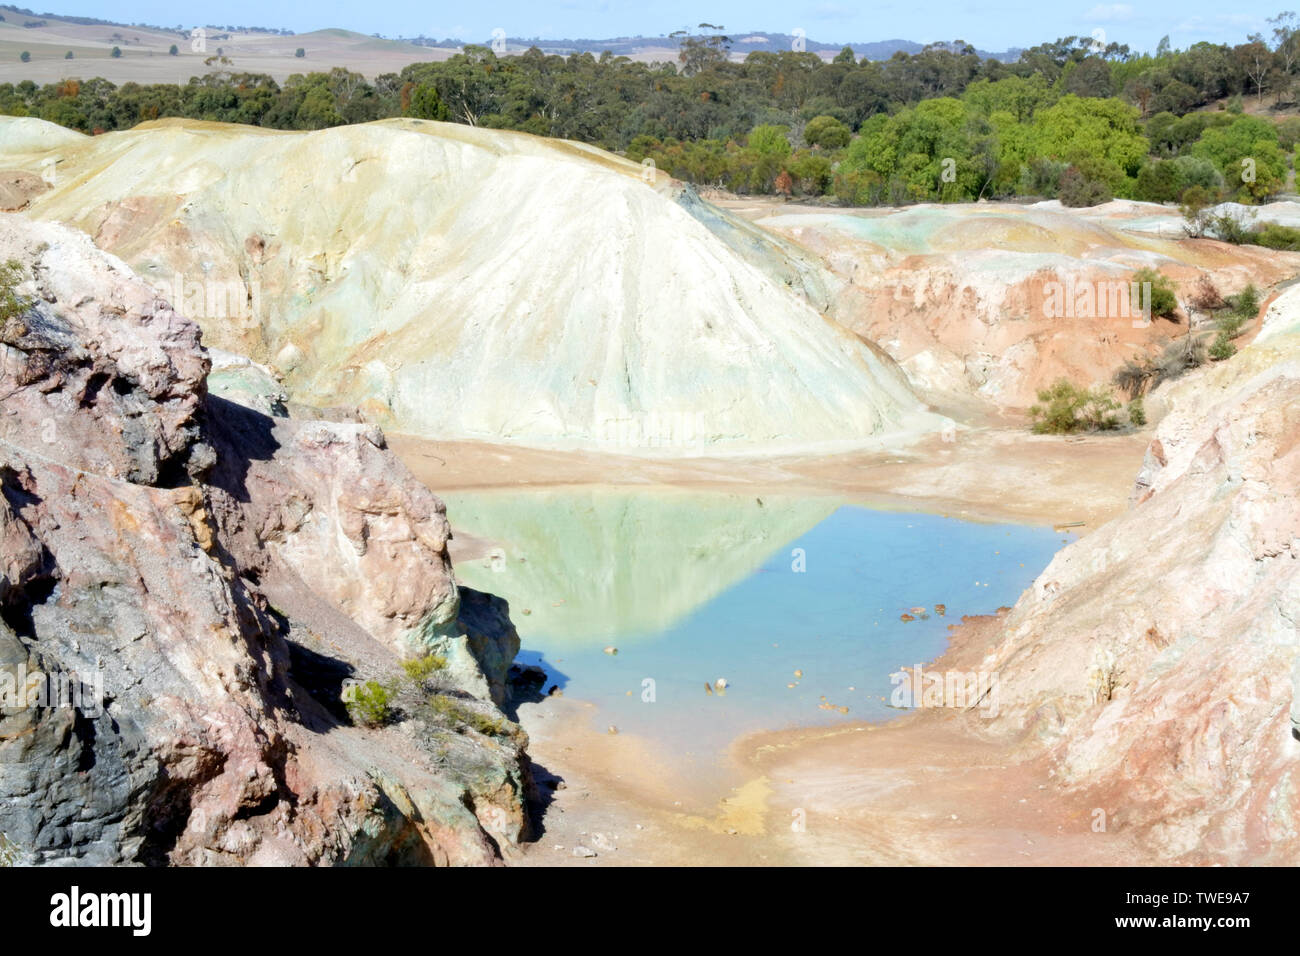 Aerial landscape view of Kapunda Copper Mine in South Australia as view from a drone point of view. - Stock Image